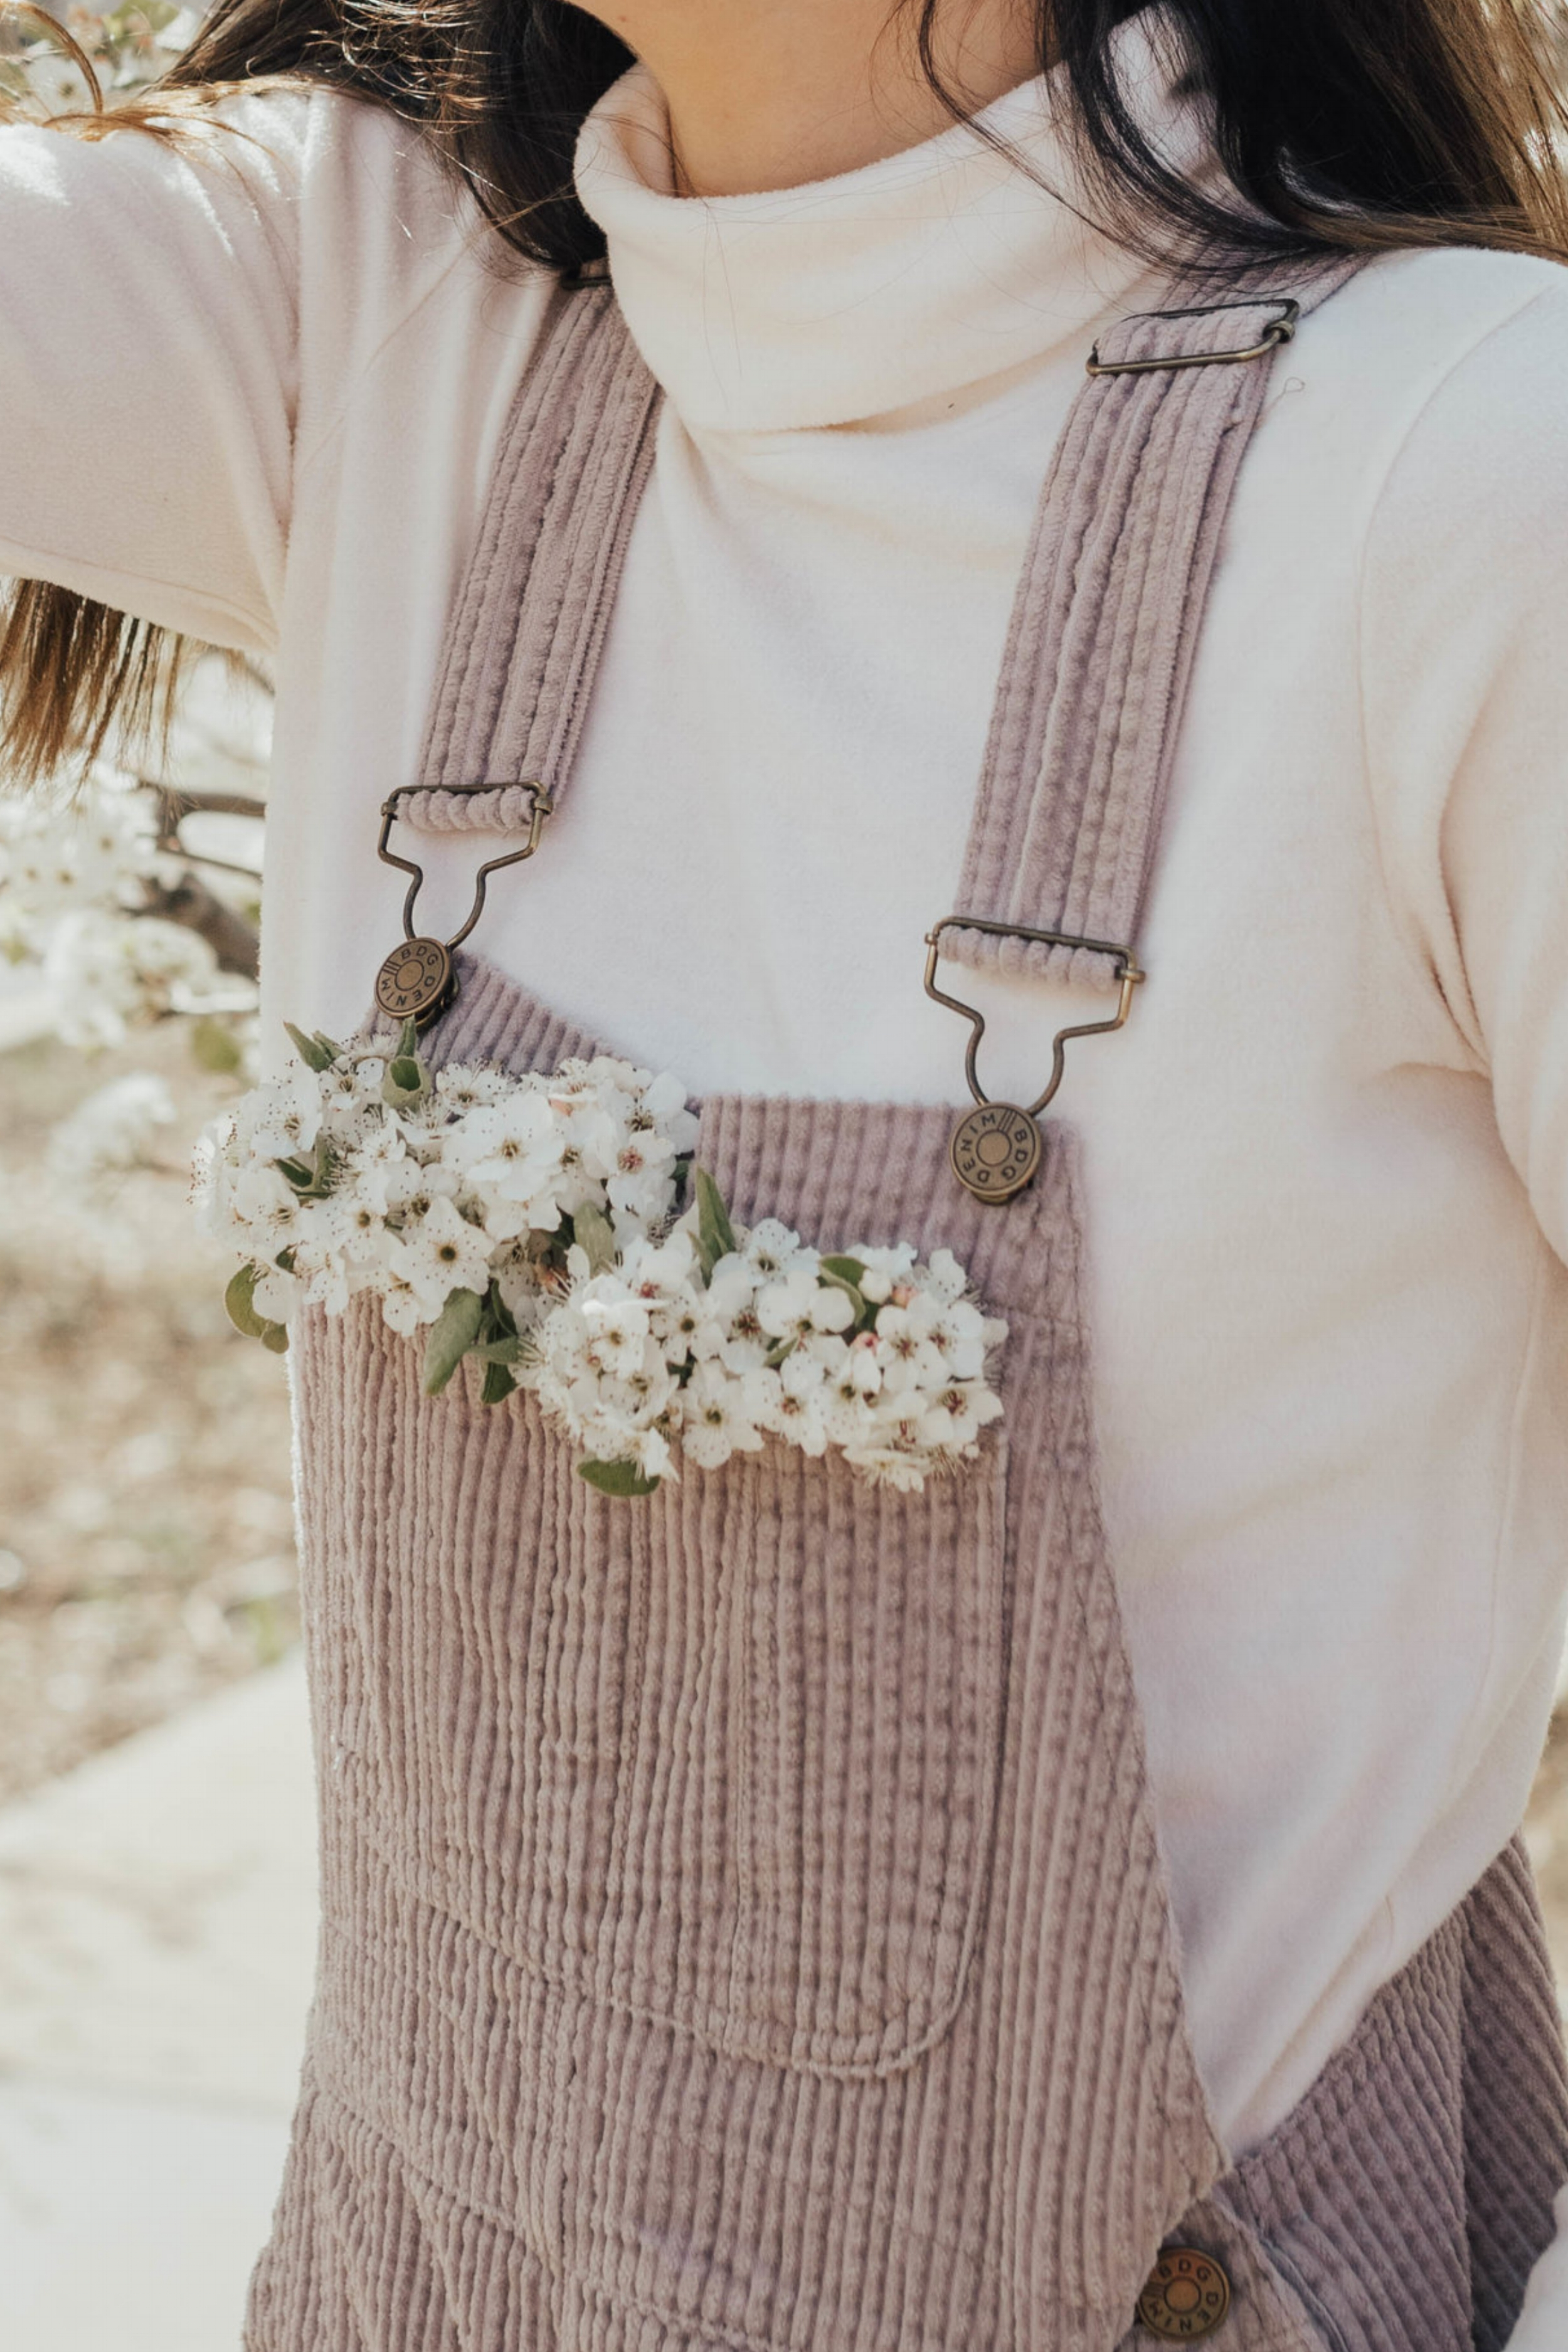 Cherry Blossoms in Overalls